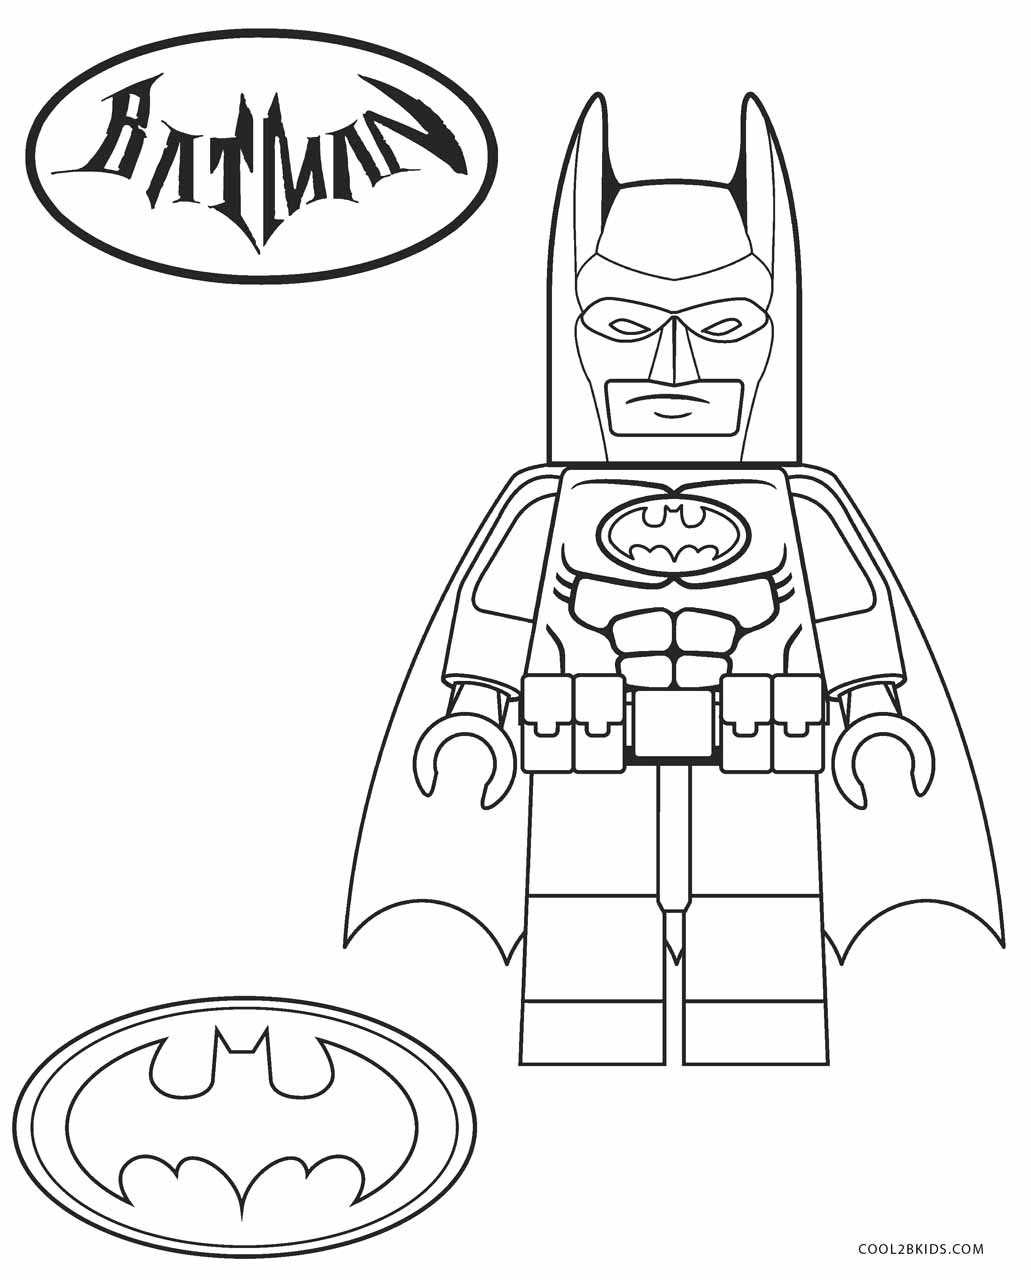 lego color sheet the lego movie free printables coloring pages activities color lego sheet